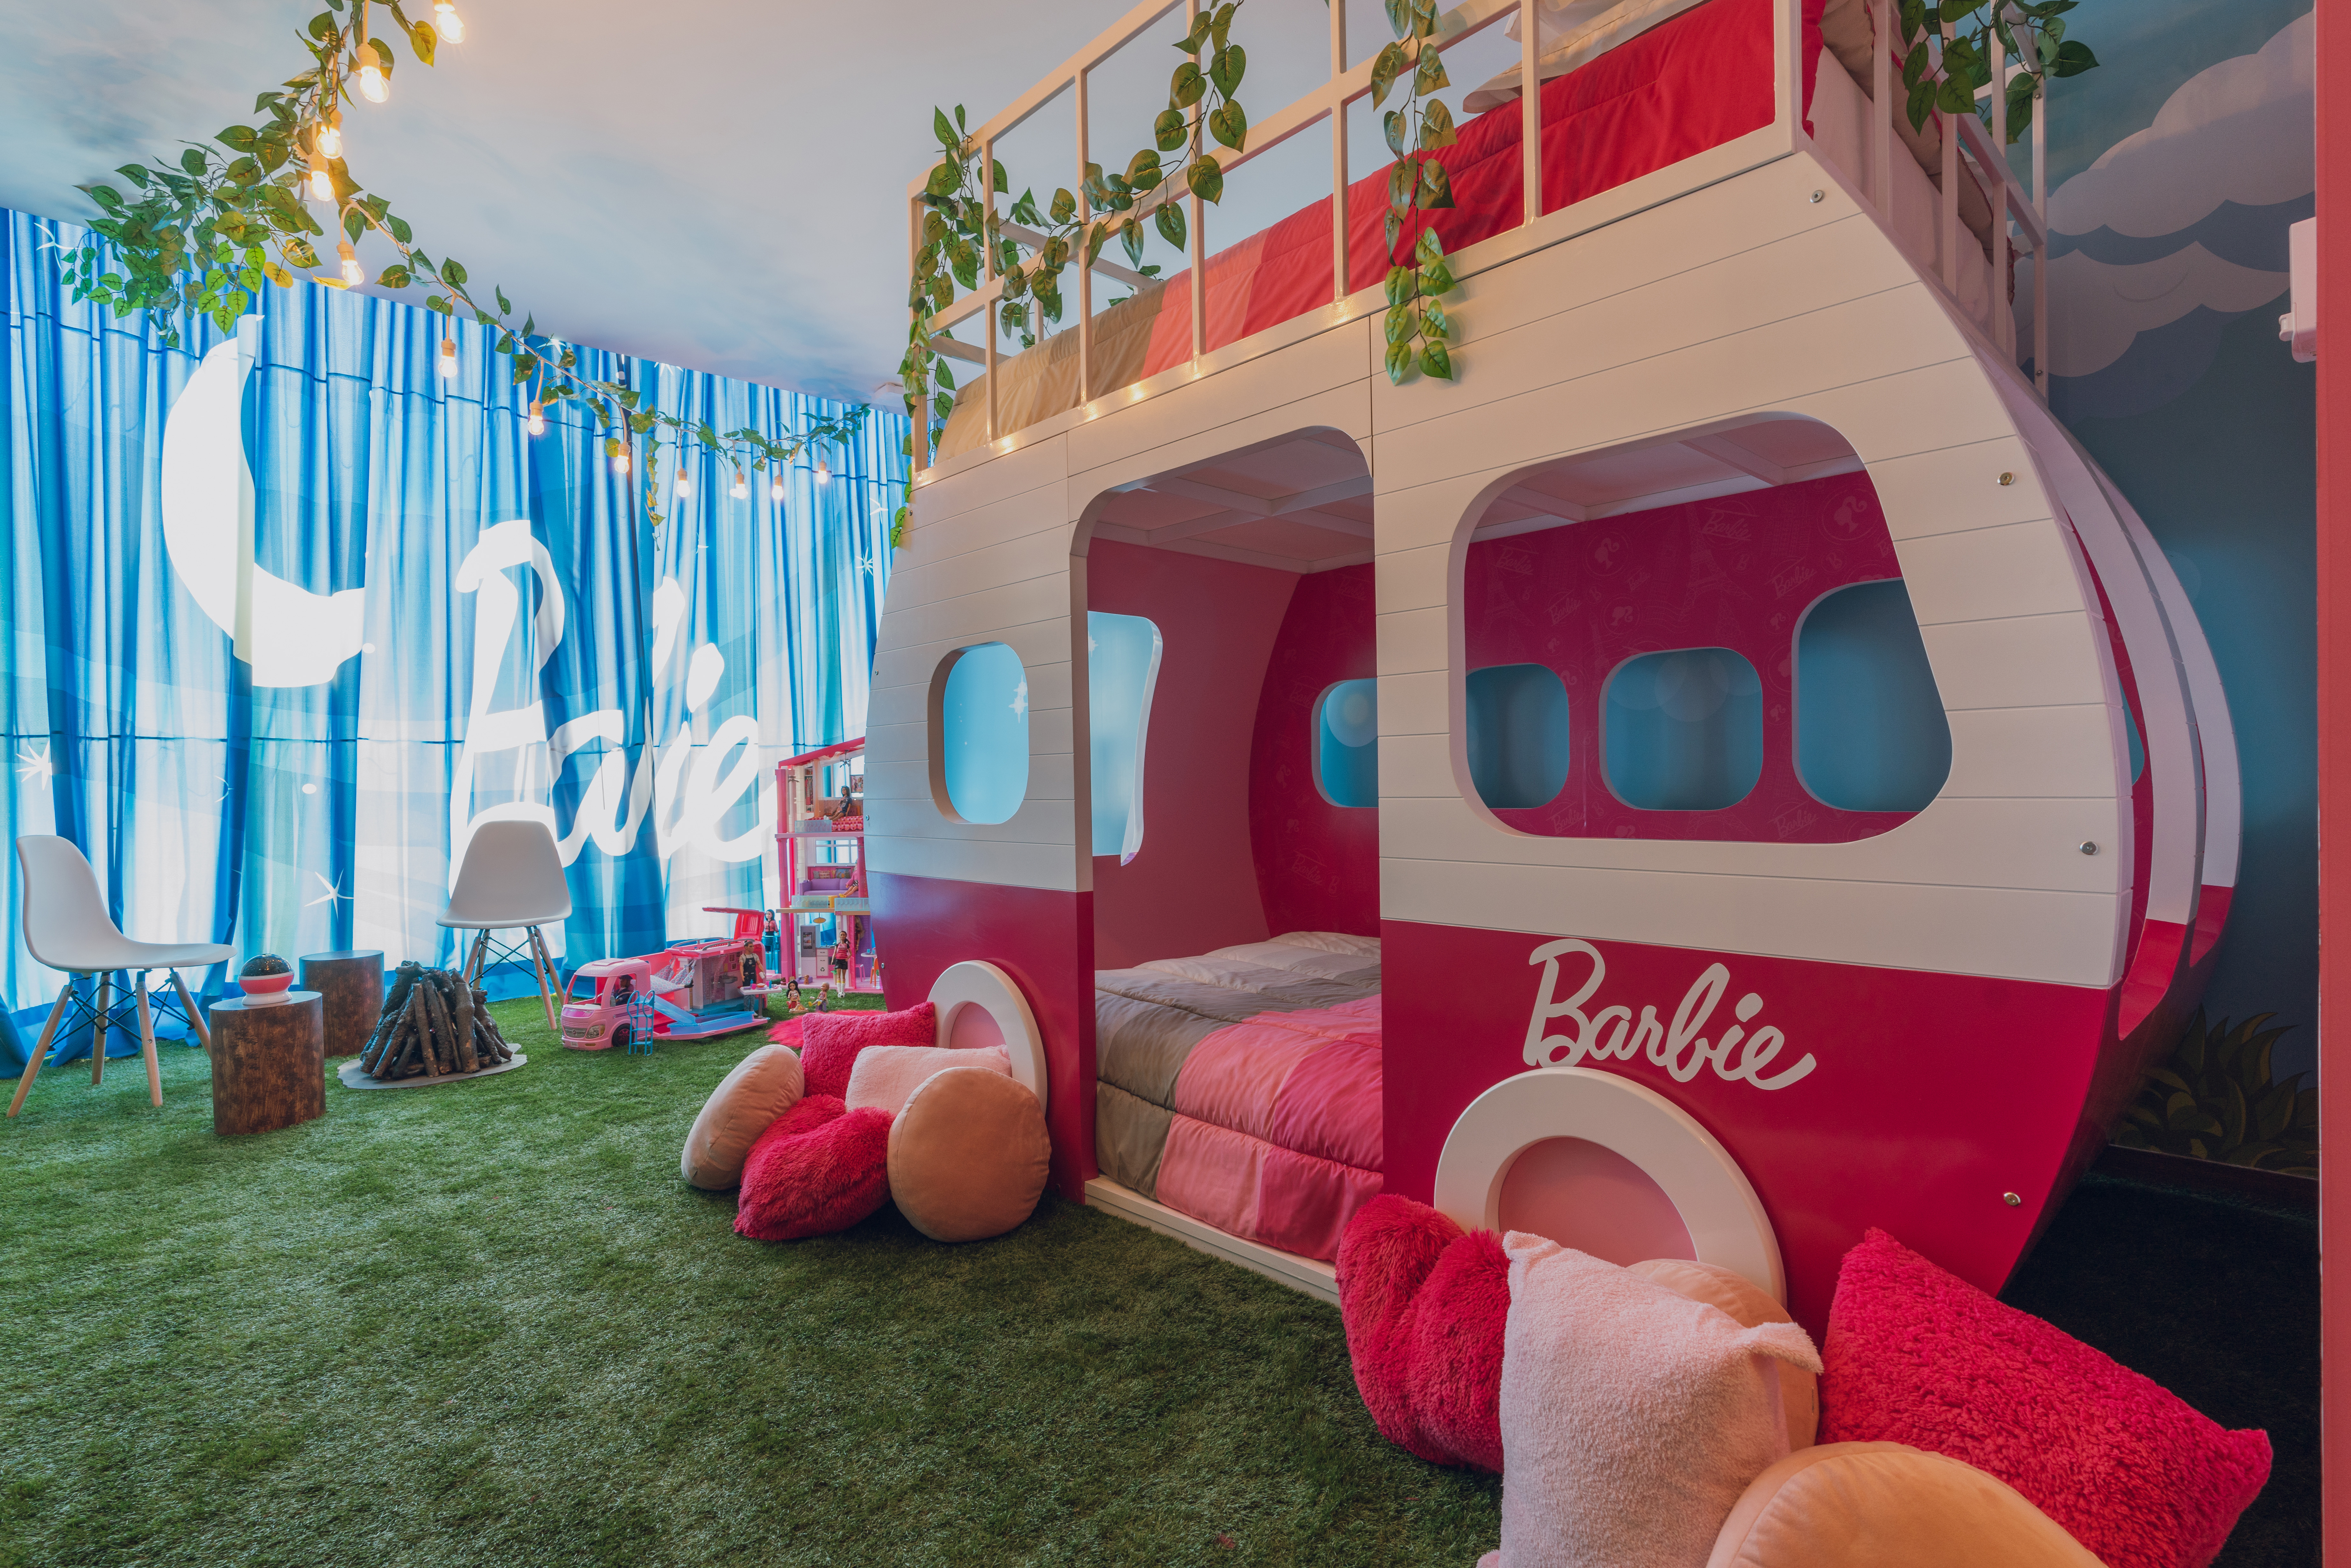 This Barbie Themed Hotel Suite Is A Pink Plastic Dream Come True